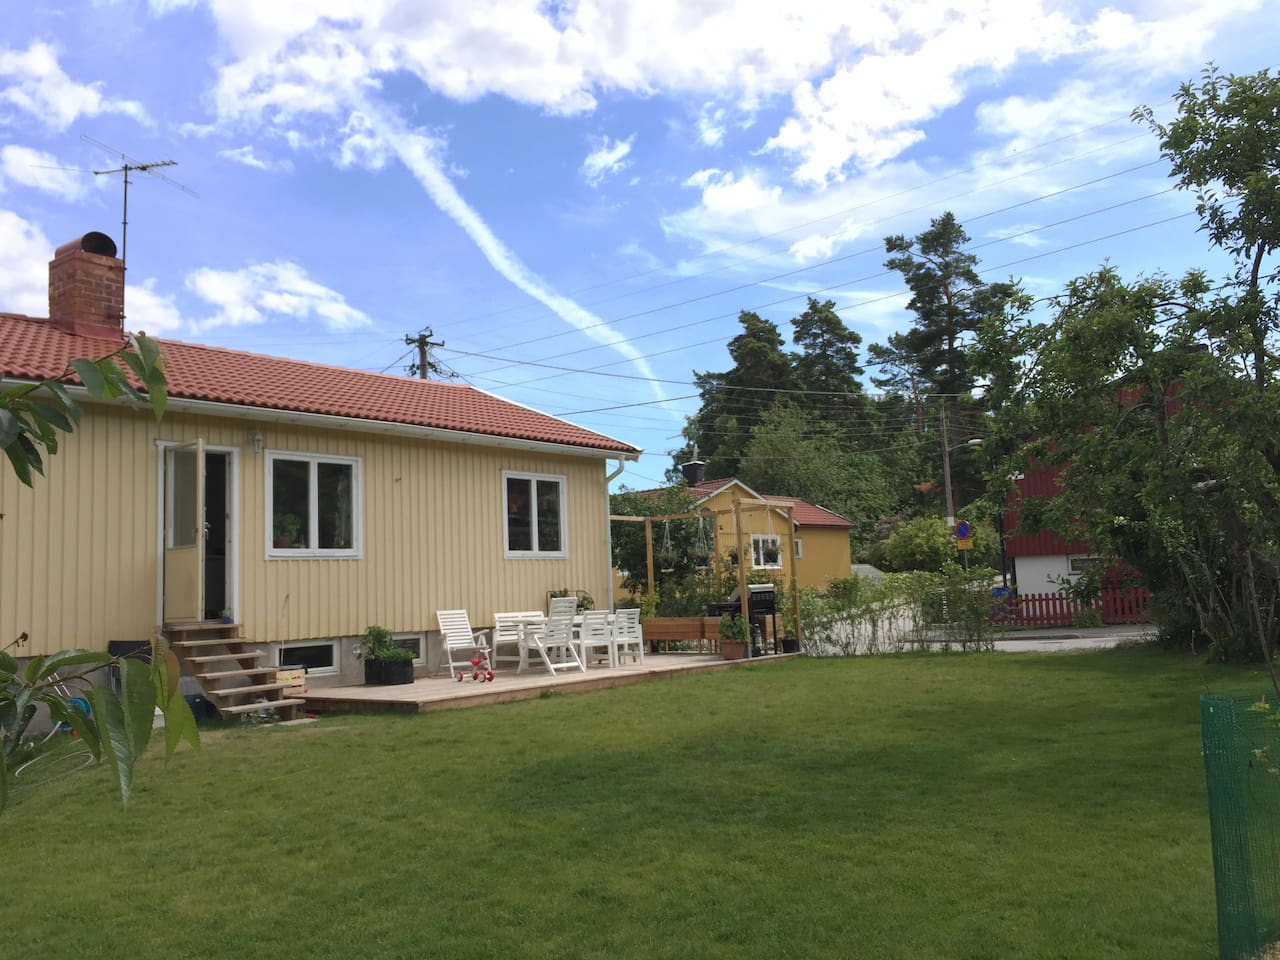 Pleasant garden with wooden deck, barbecue and seating for up to 10 people